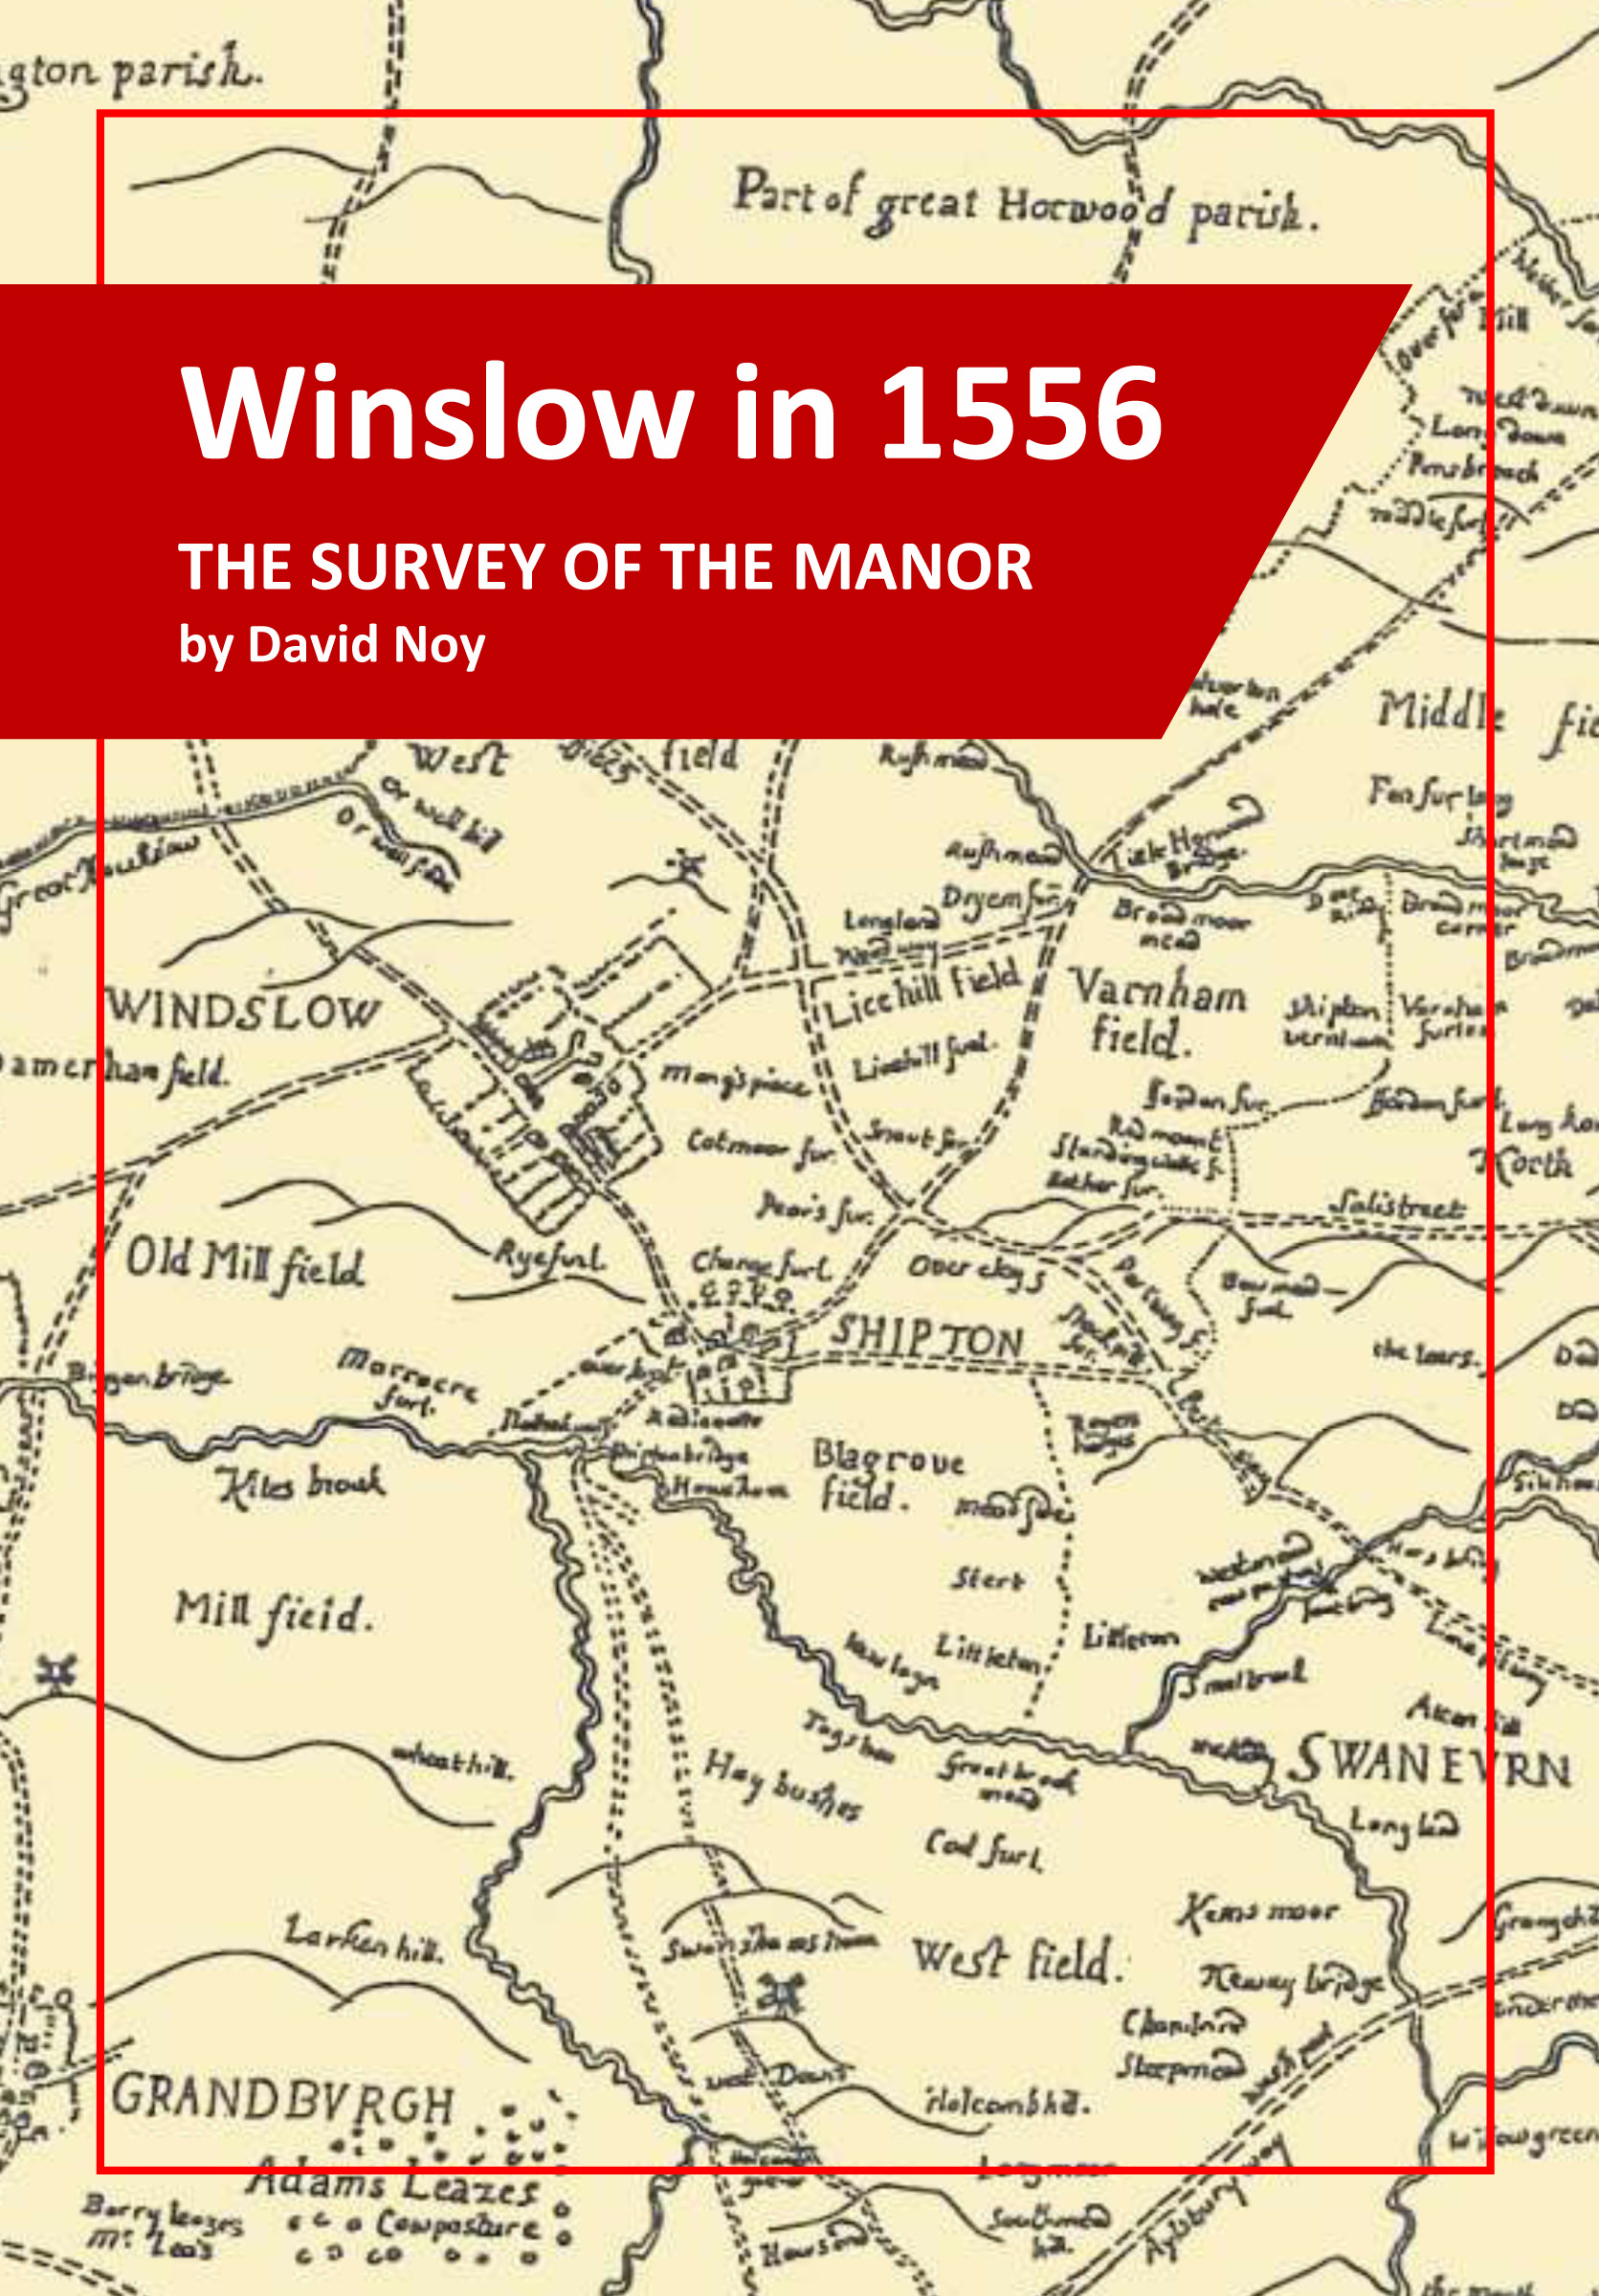 Winslow in 1556